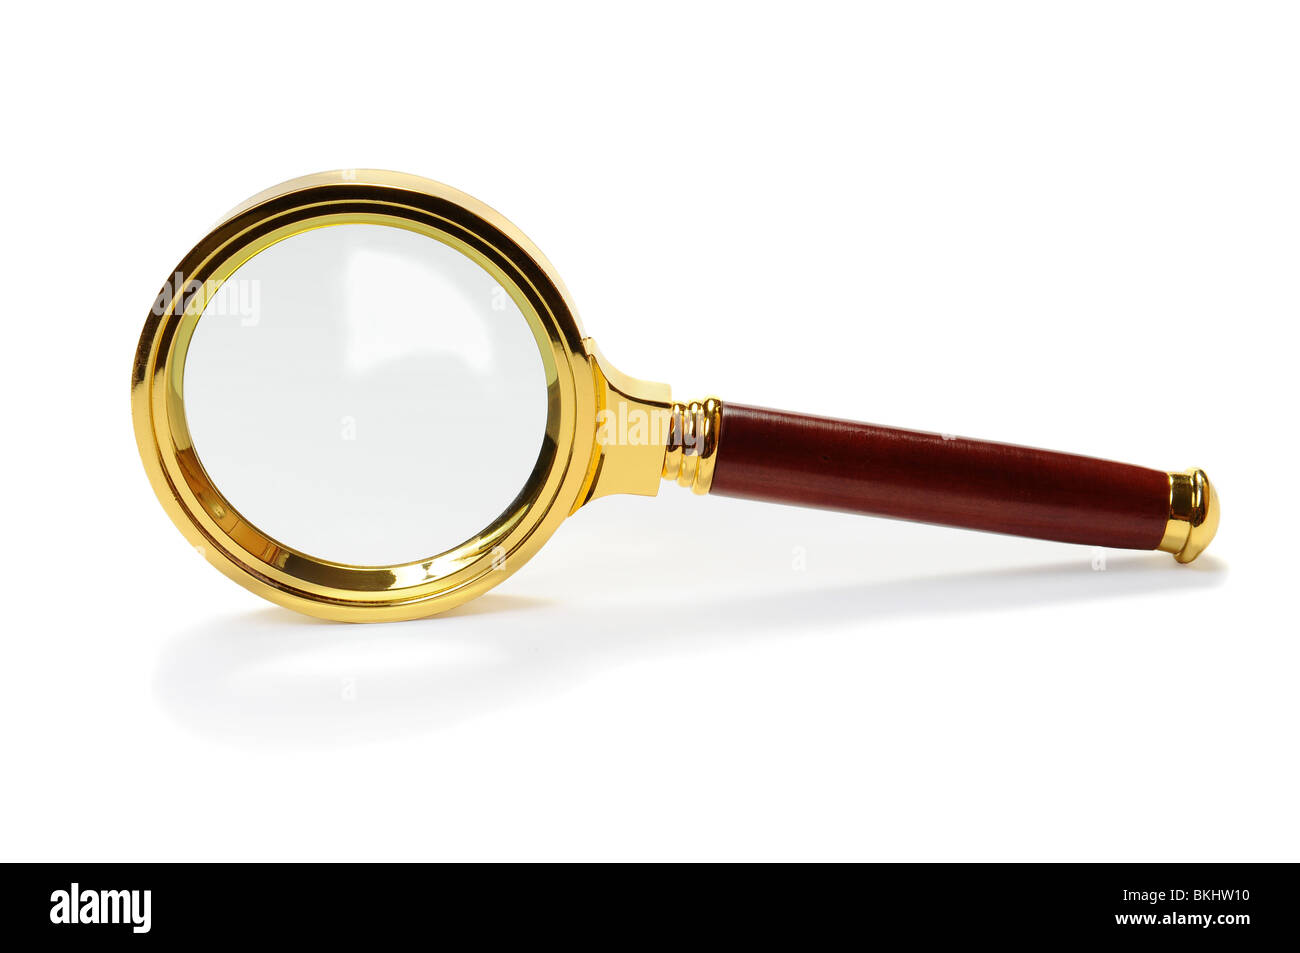 Magnifying Glass stand up on white background. Isolated image - Stock Image